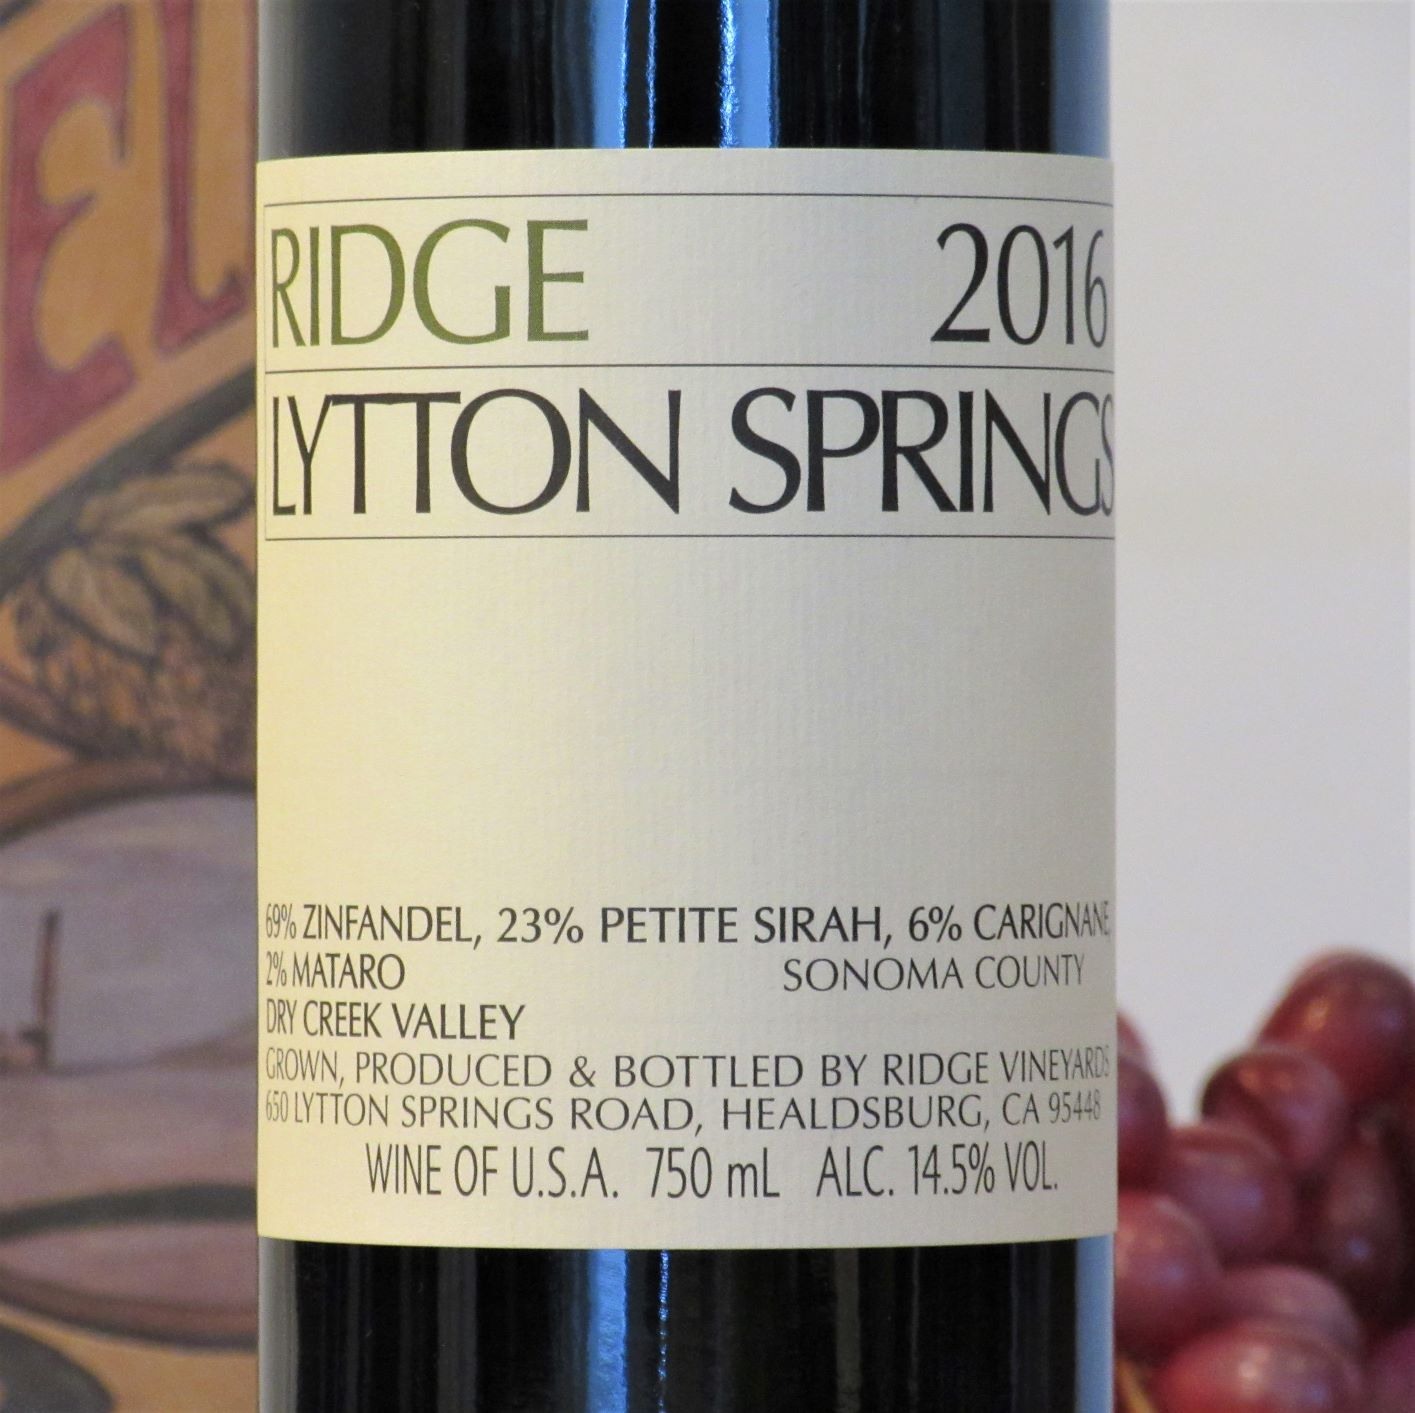 Ridge Lytton Springs 2016